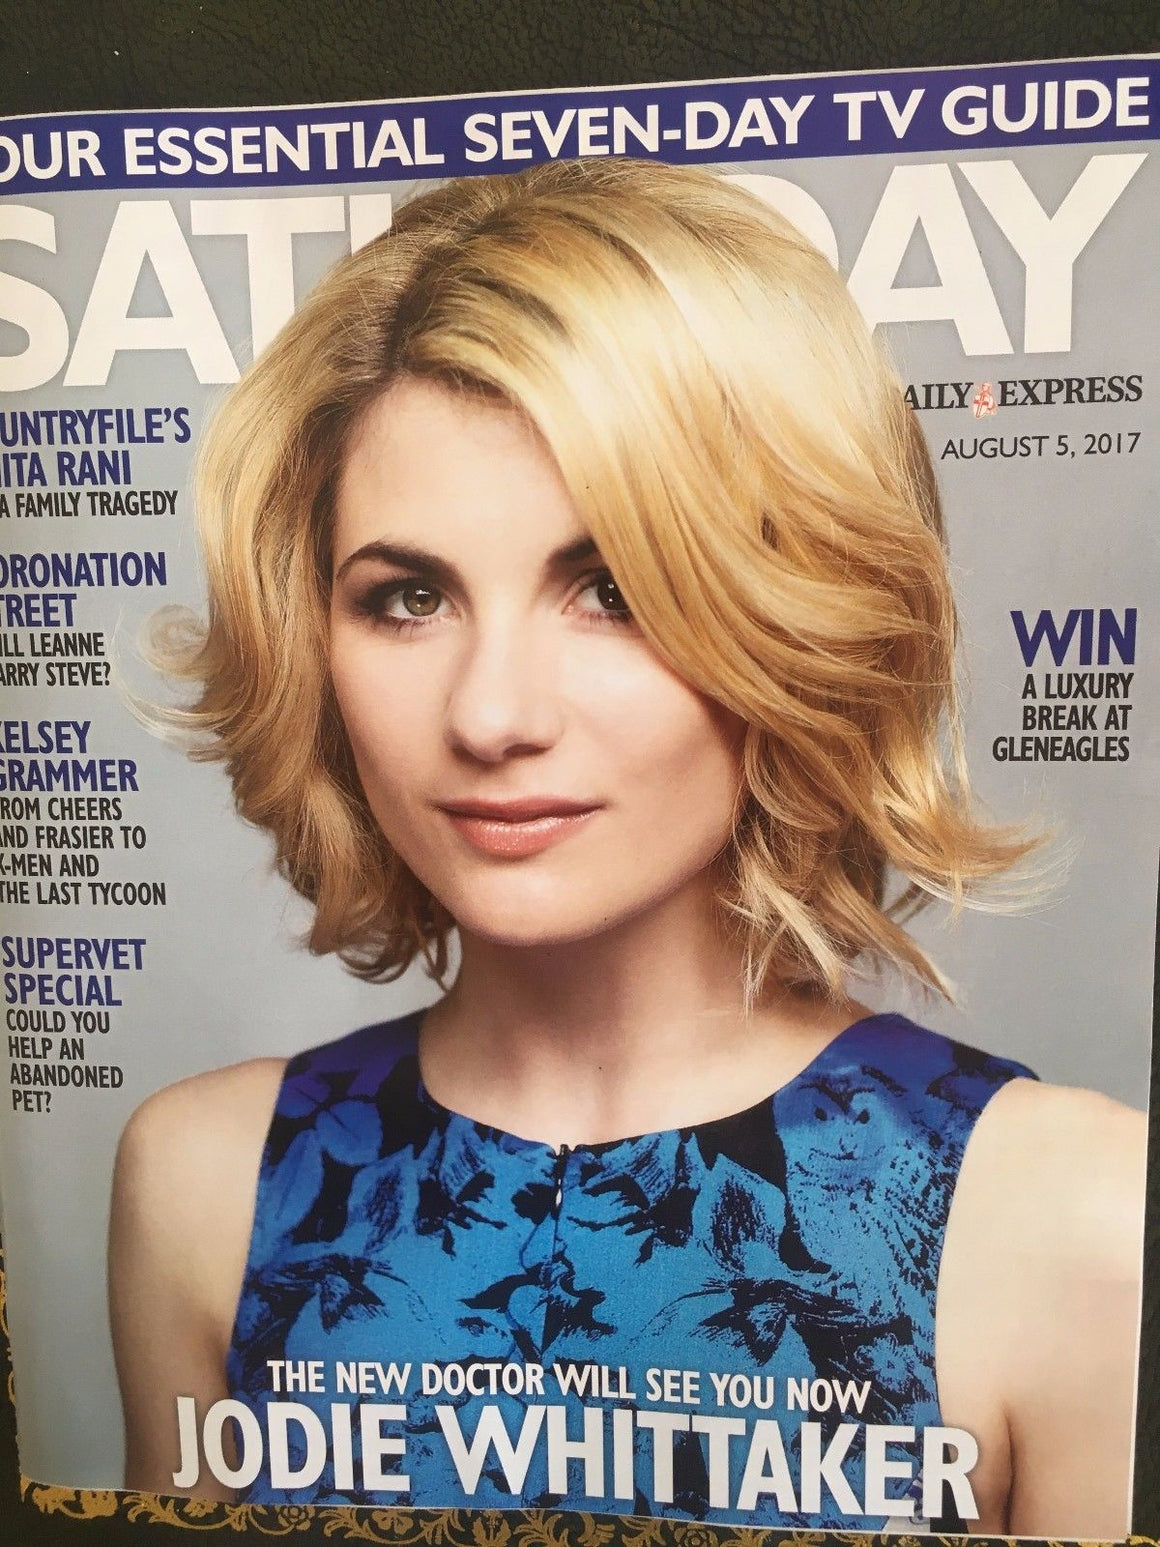 Saturday Magazine Aug 2017 Jodie Whittaker Dr Who Noel Fitzpatrick Jane Danson